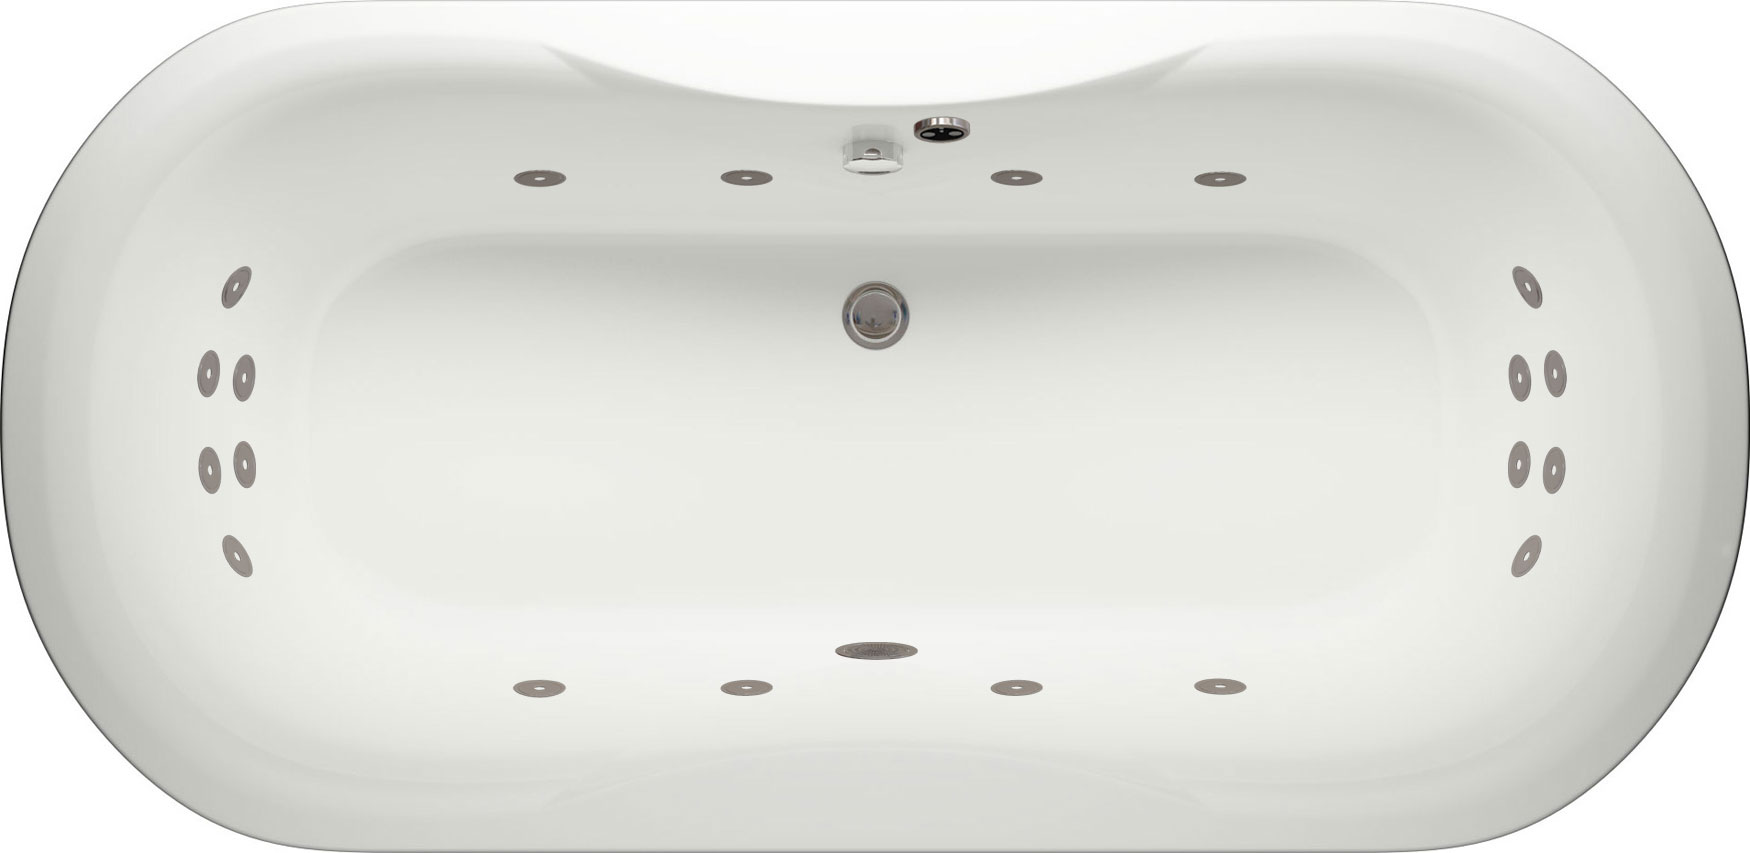 Milan Super Lux Whirlpool Bath with LED Lights | Luna Spas